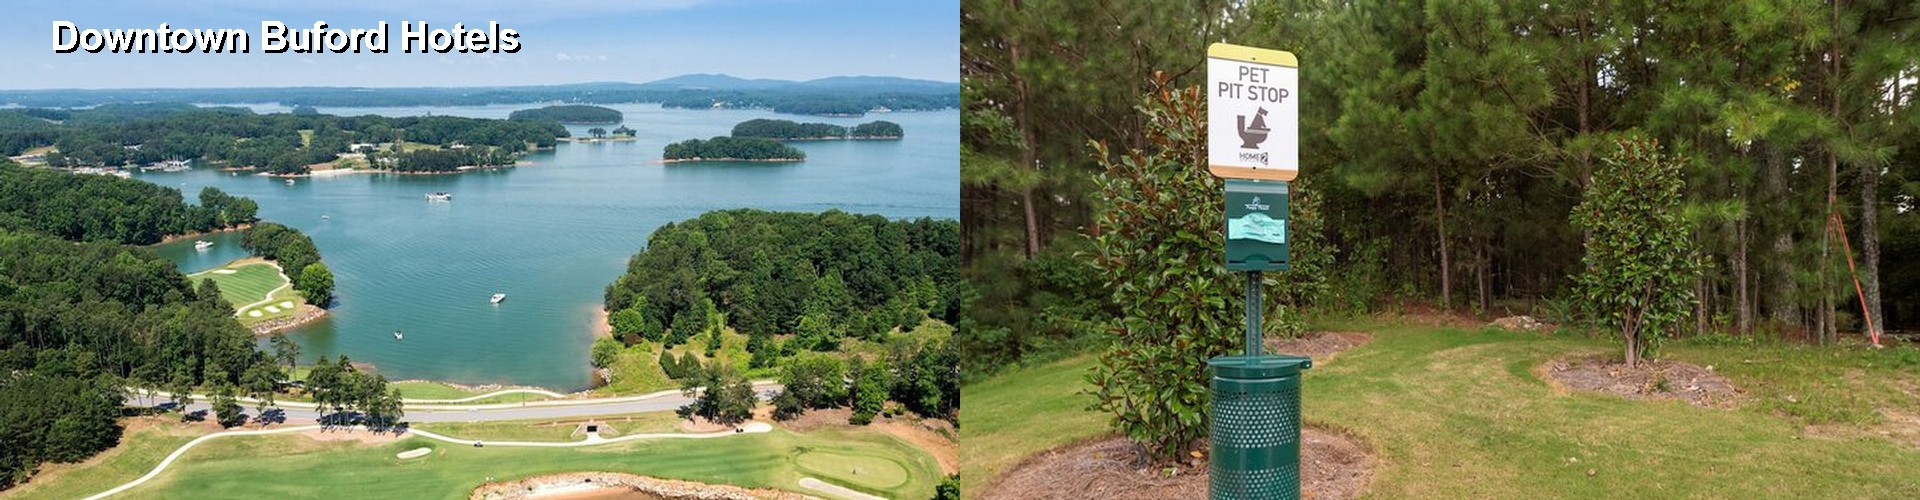 5 Best Hotels near Downtown Buford